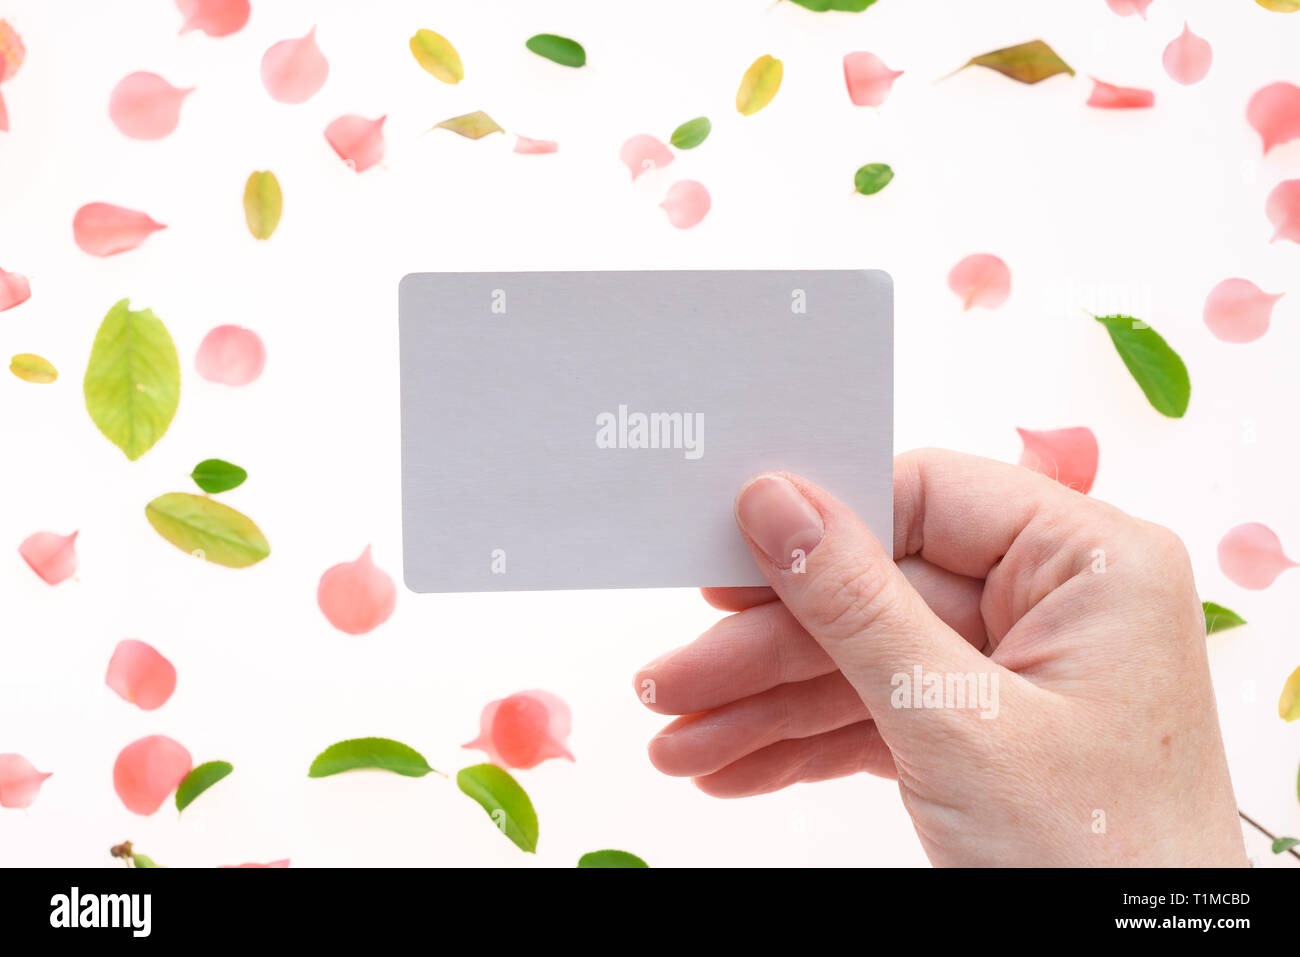 Woman holding blank white business card mock up in hand over white background with blooming springtime flower petals and leaves scattered around Stock Photo